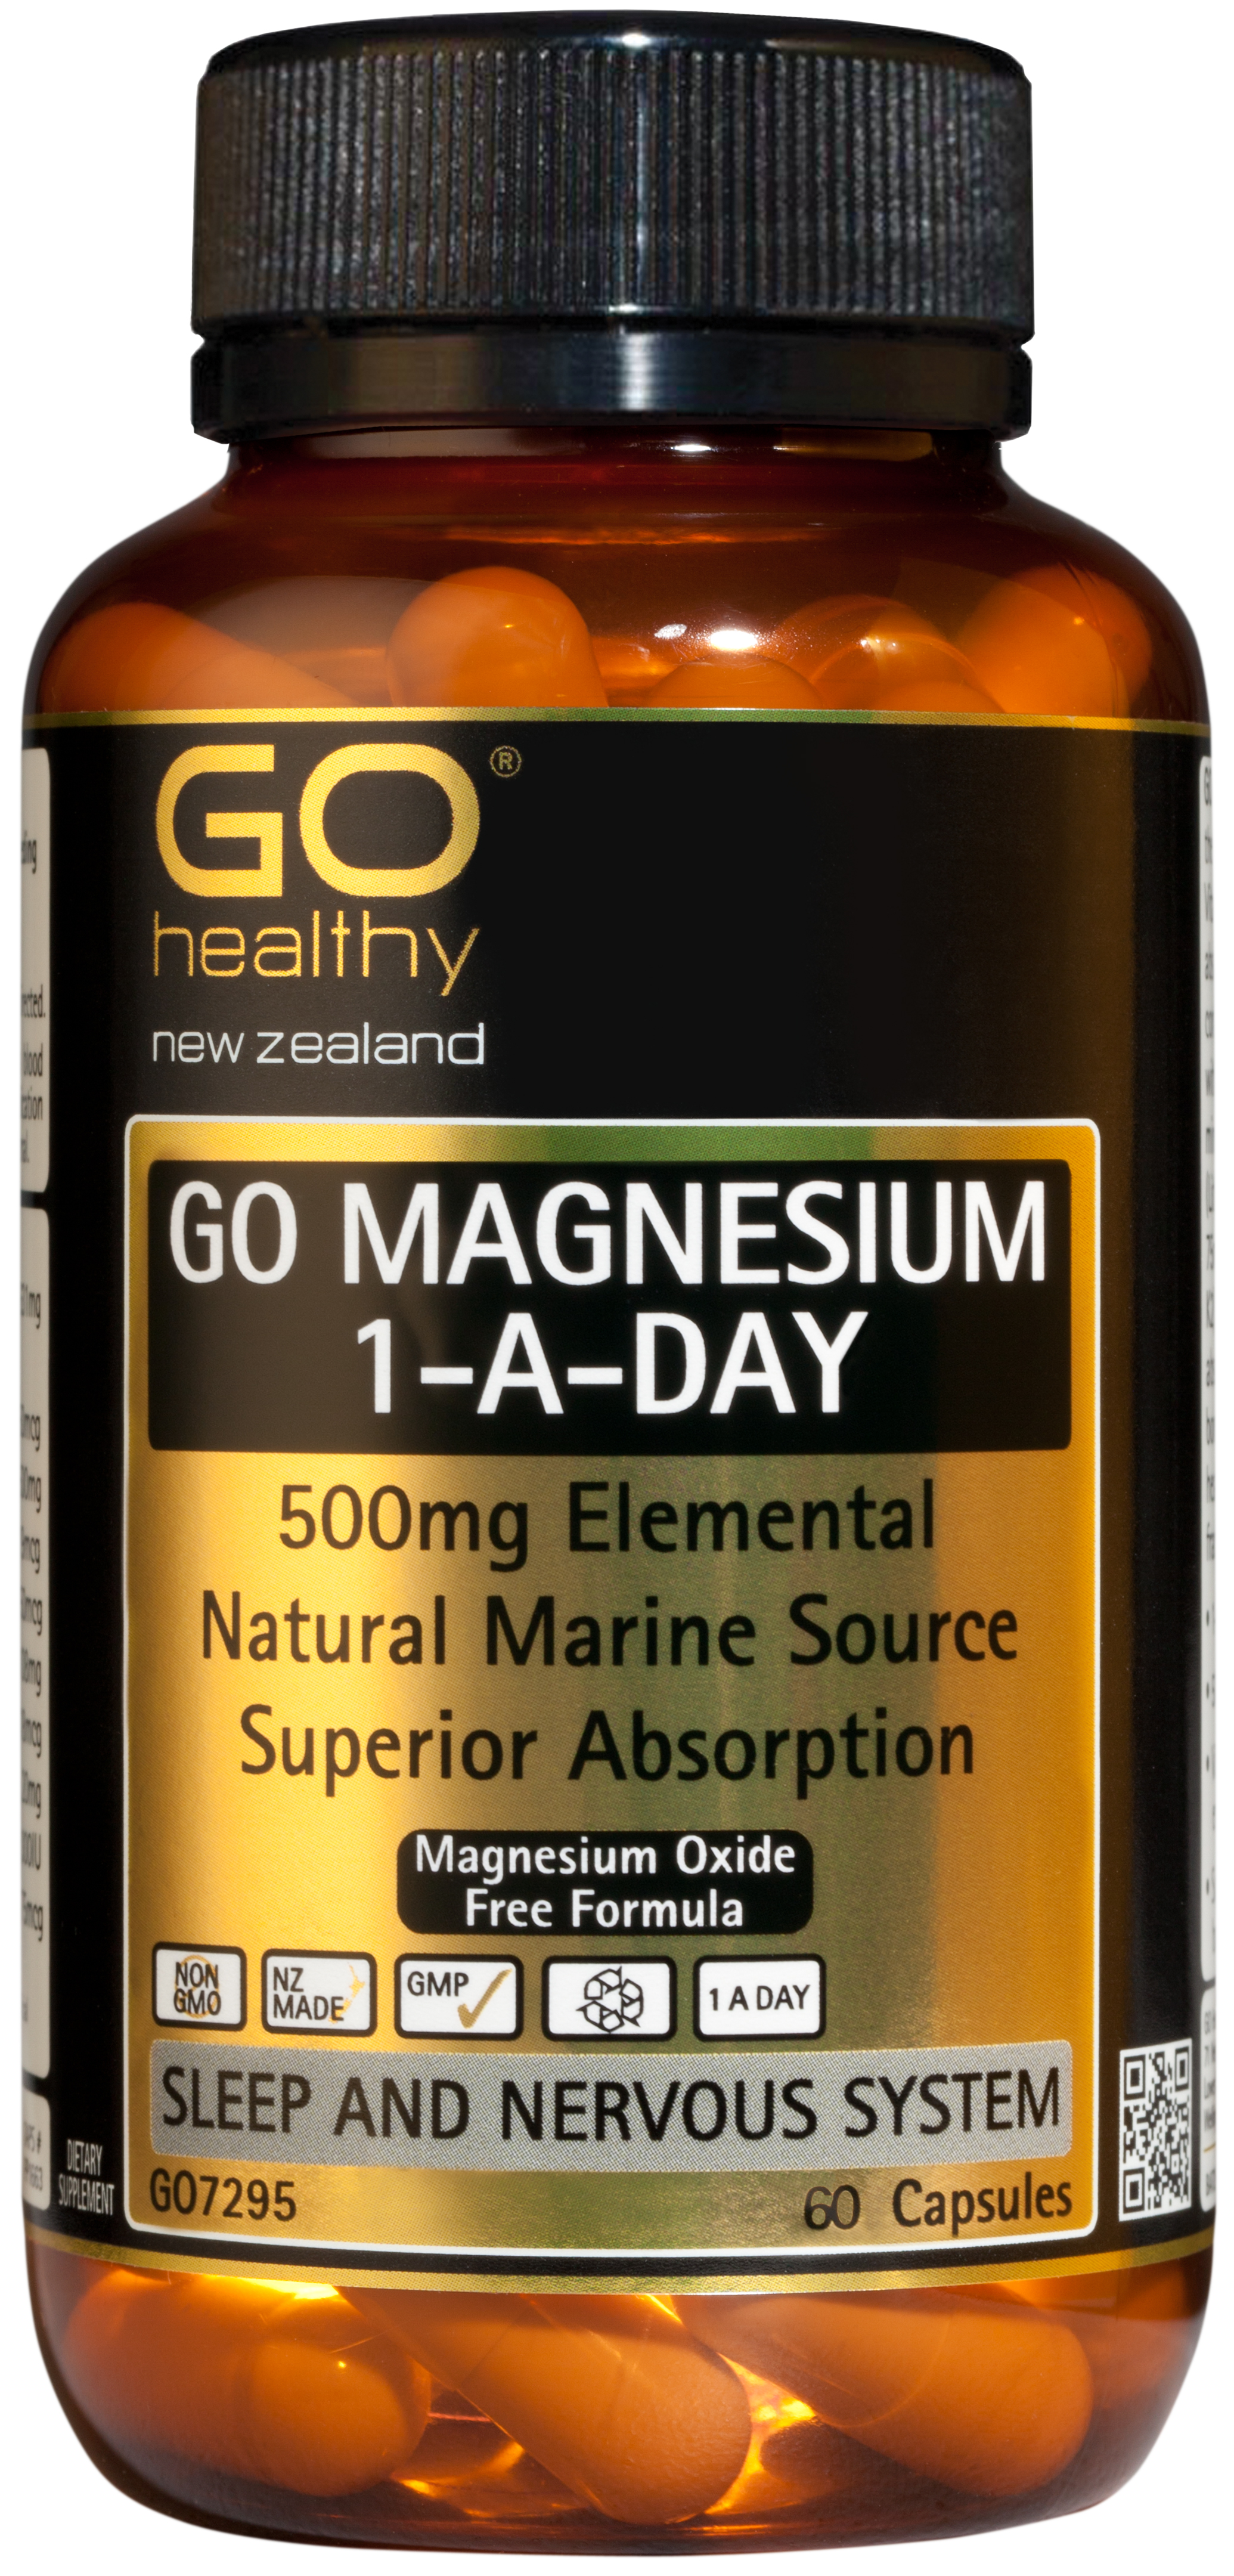 GO Healthy Magnesium 1-A-Day 60 Capsules